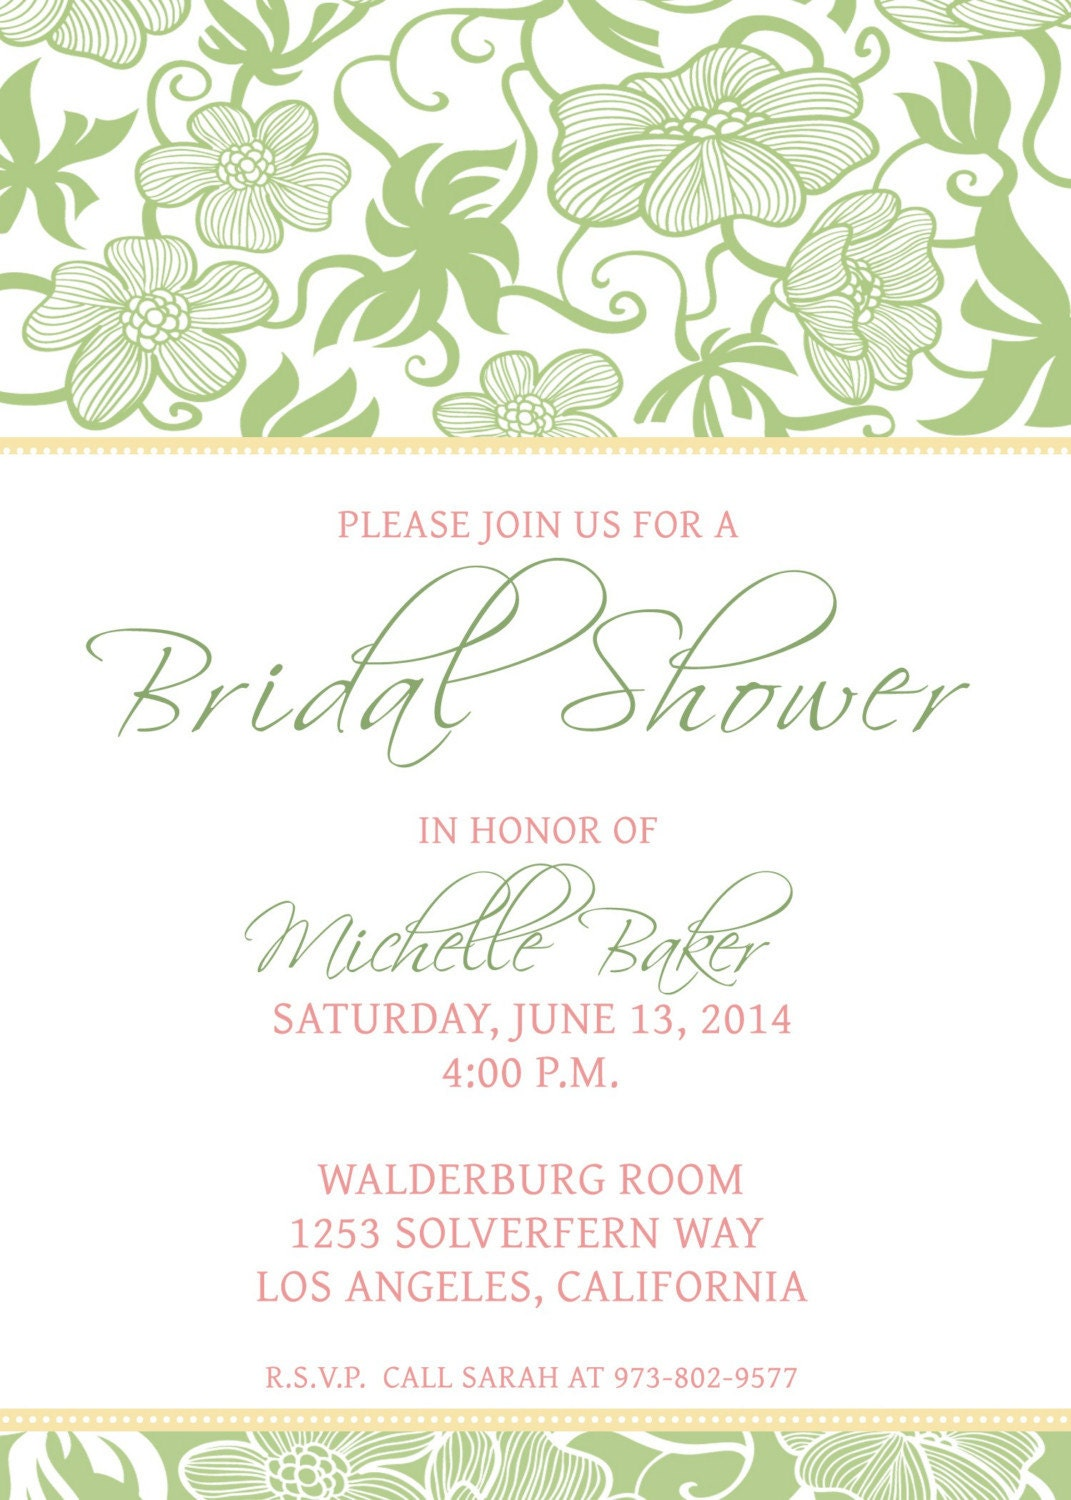 Printable Bridal Shower Invitation Template by CBDesignCollection ...